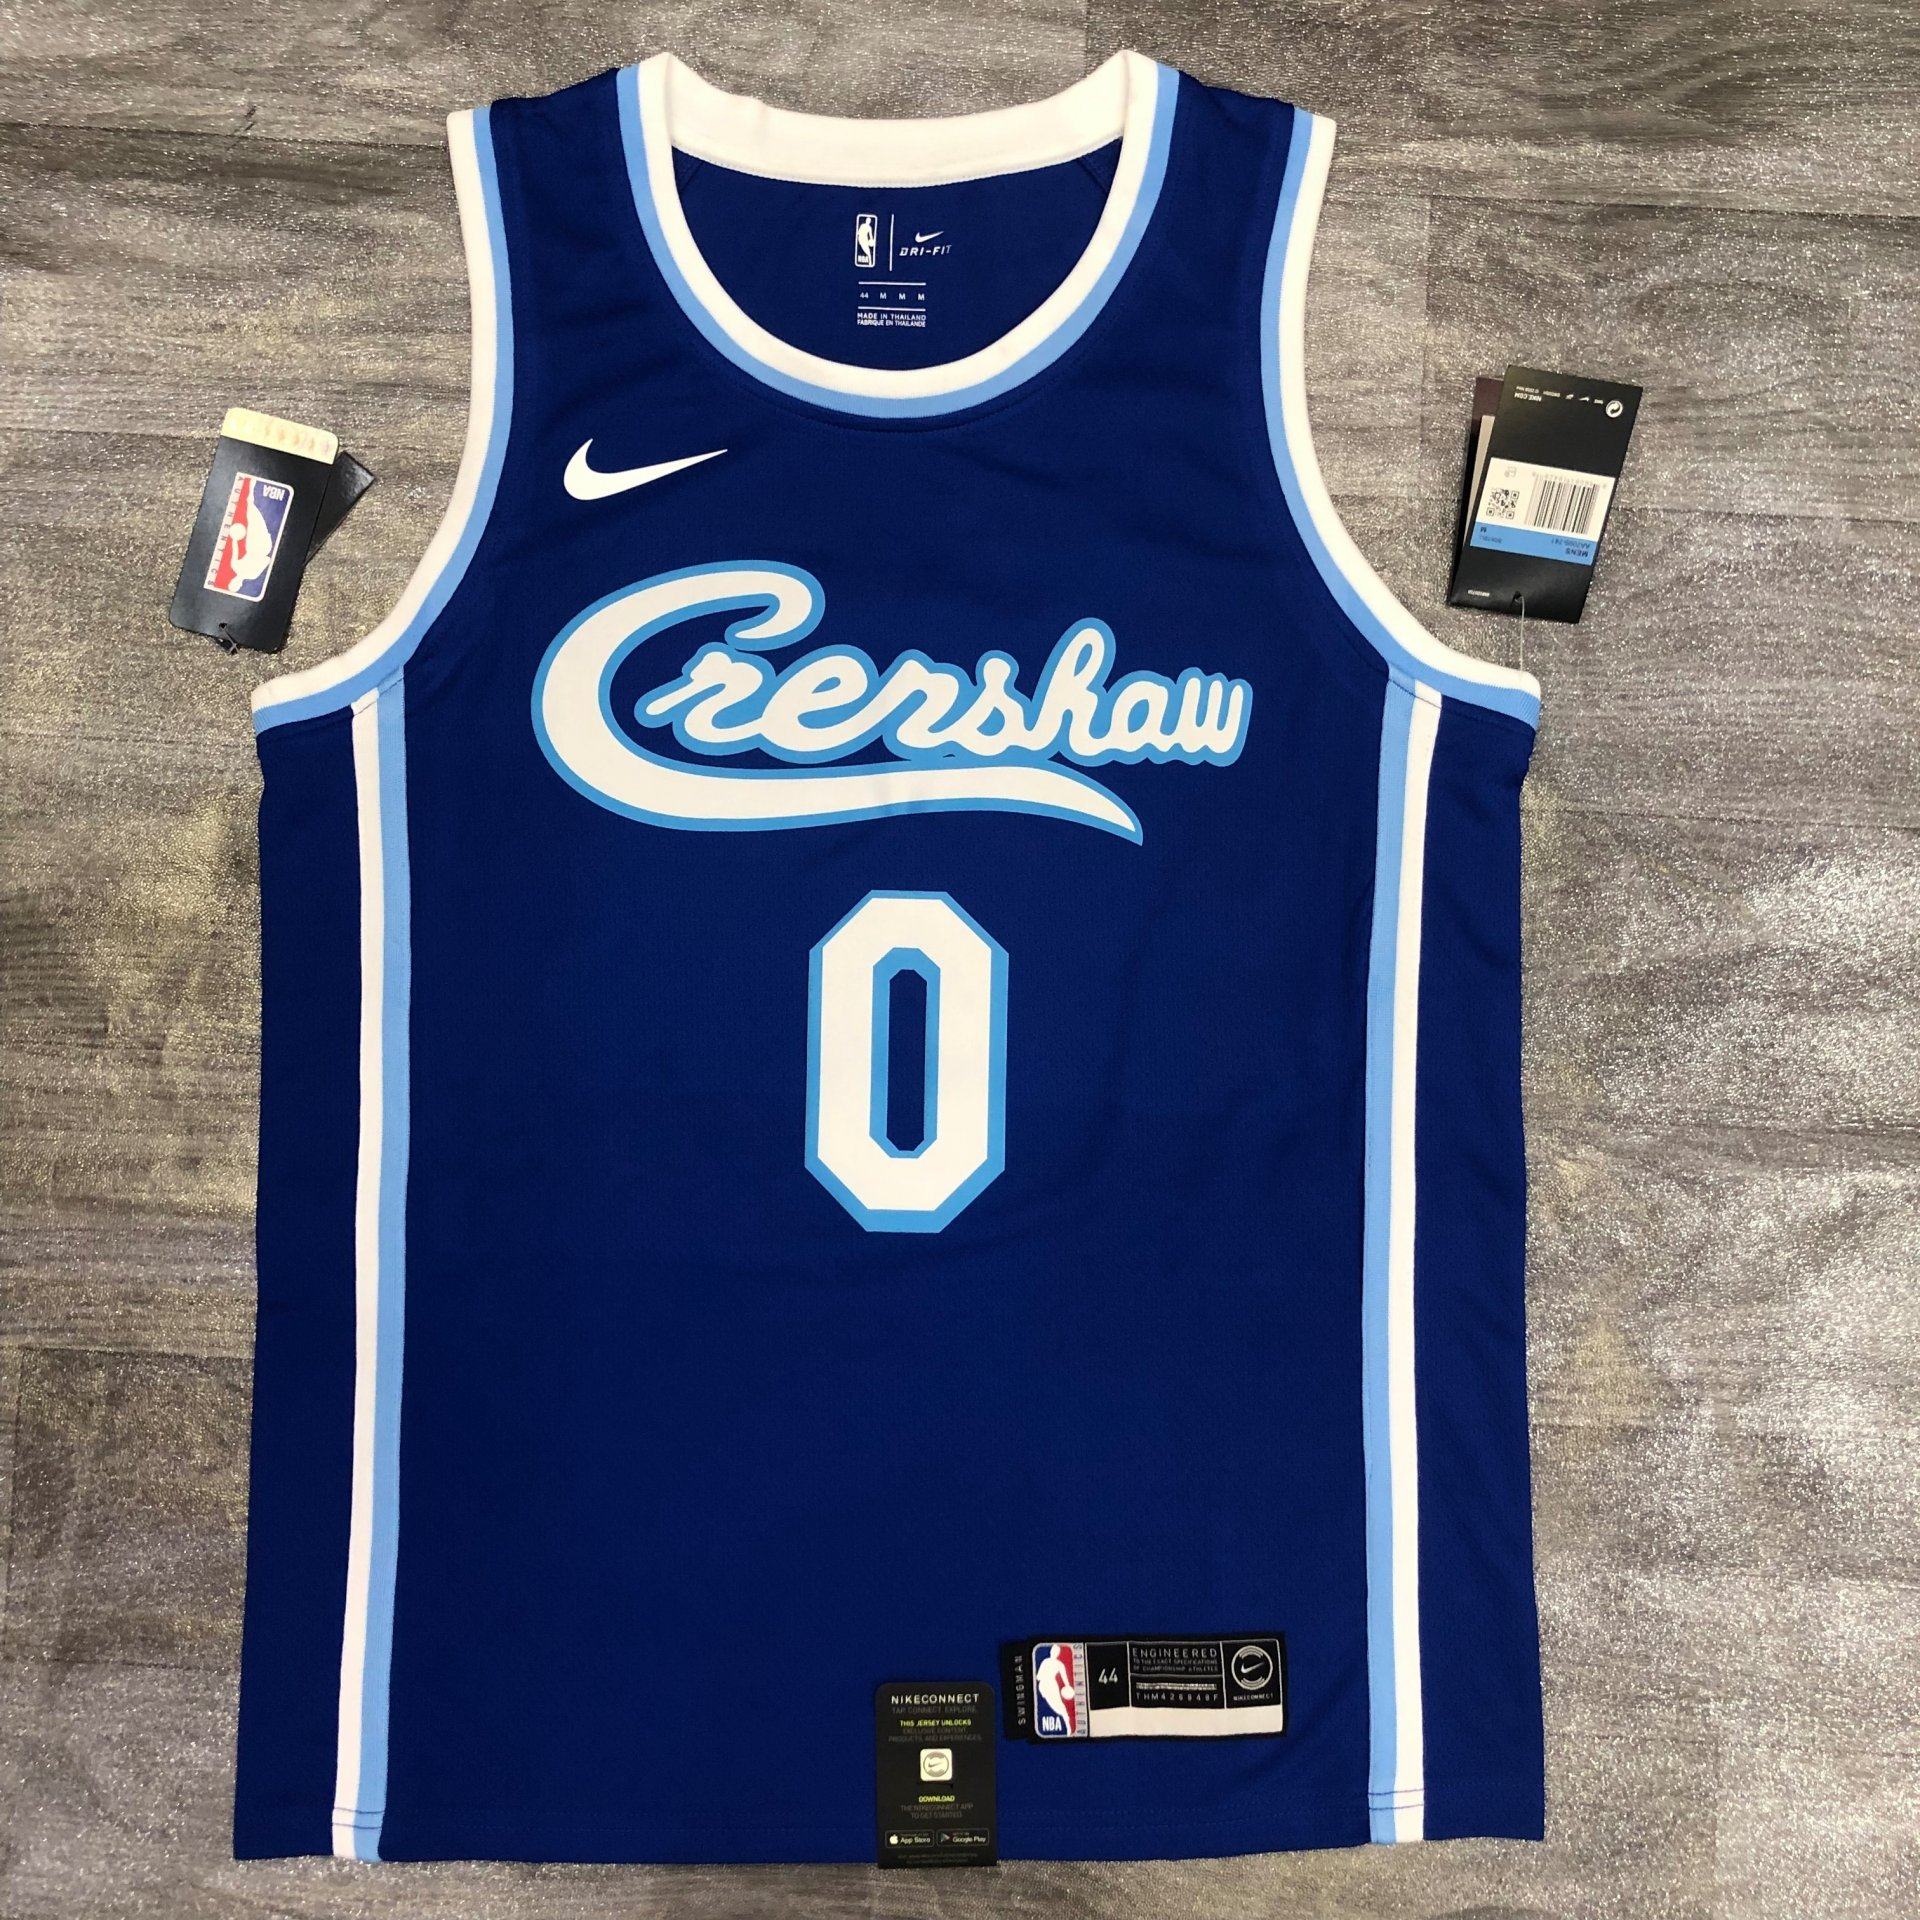 Nick young Los Angeles Lakers - Crenshaw blue #0 - JerseyAve ...